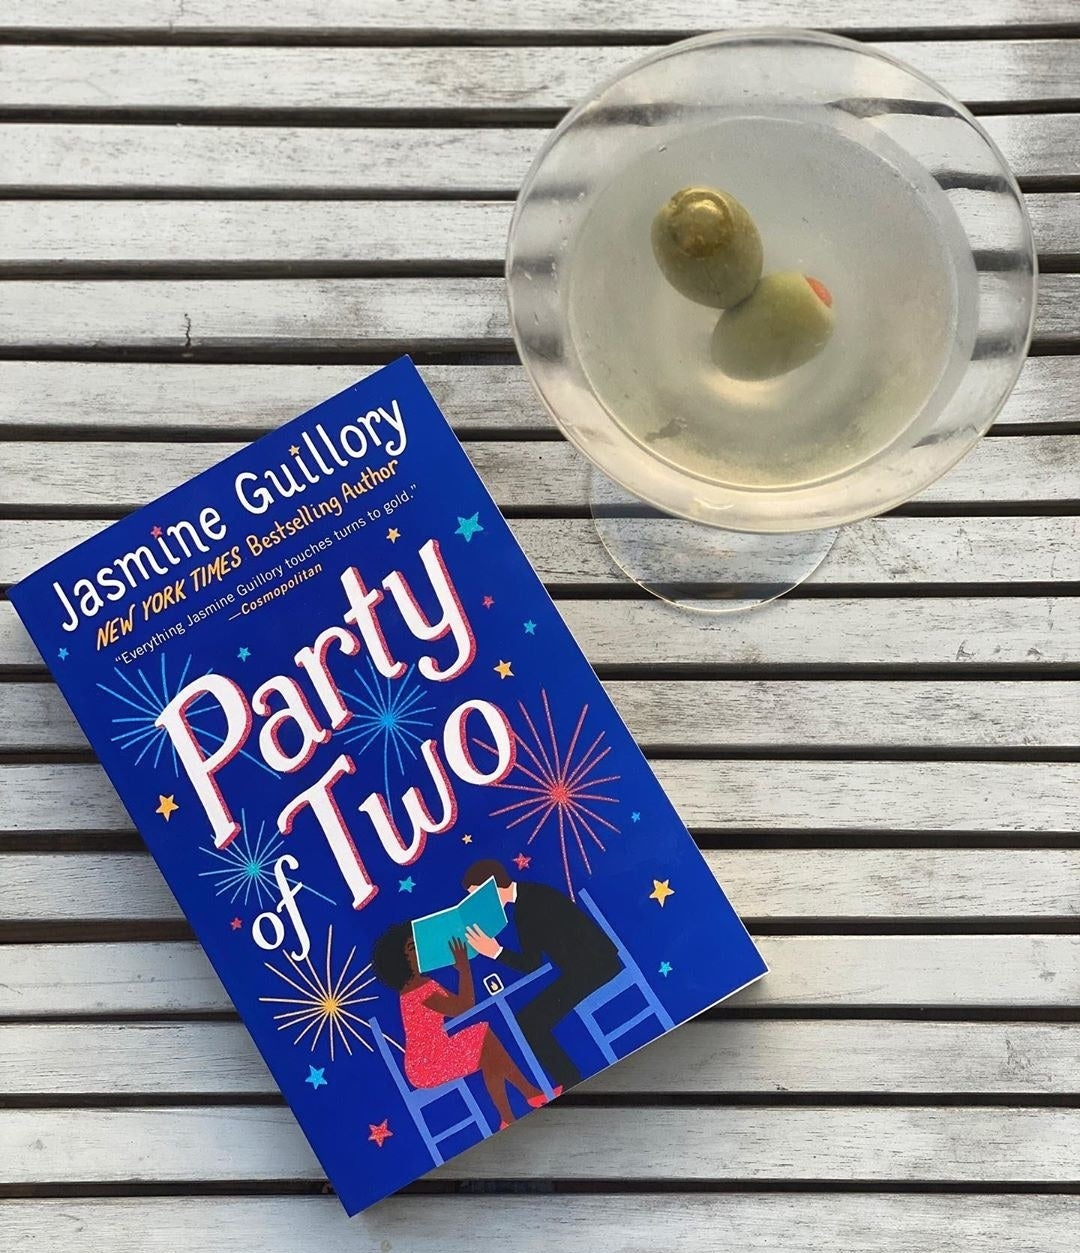 The book is flat on a table with a martini